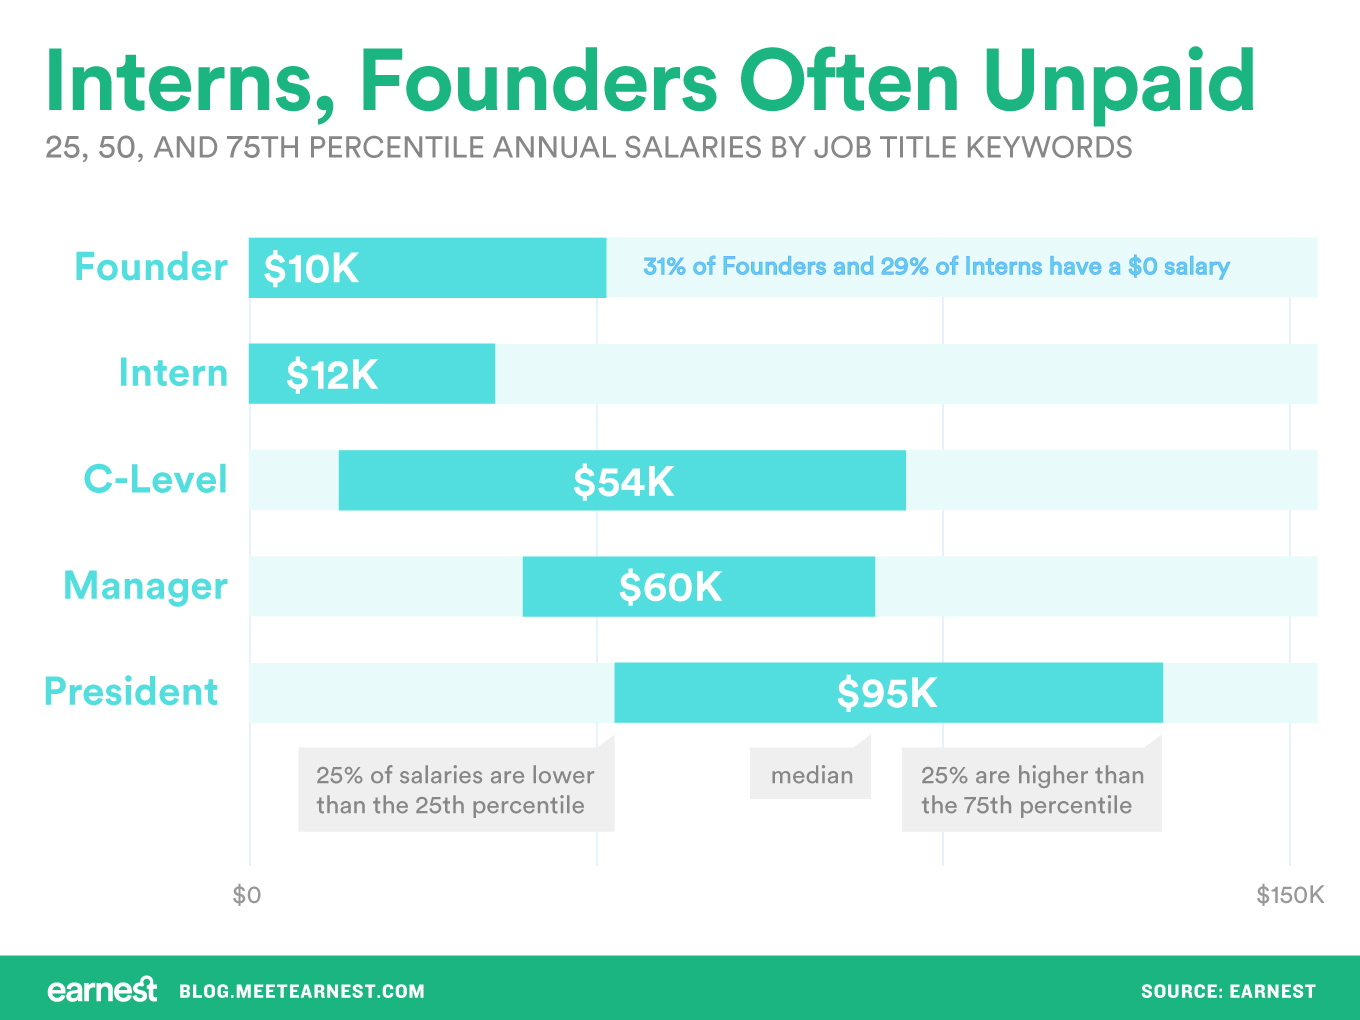 Chart showing the annualized salaries of interns compared to founders.